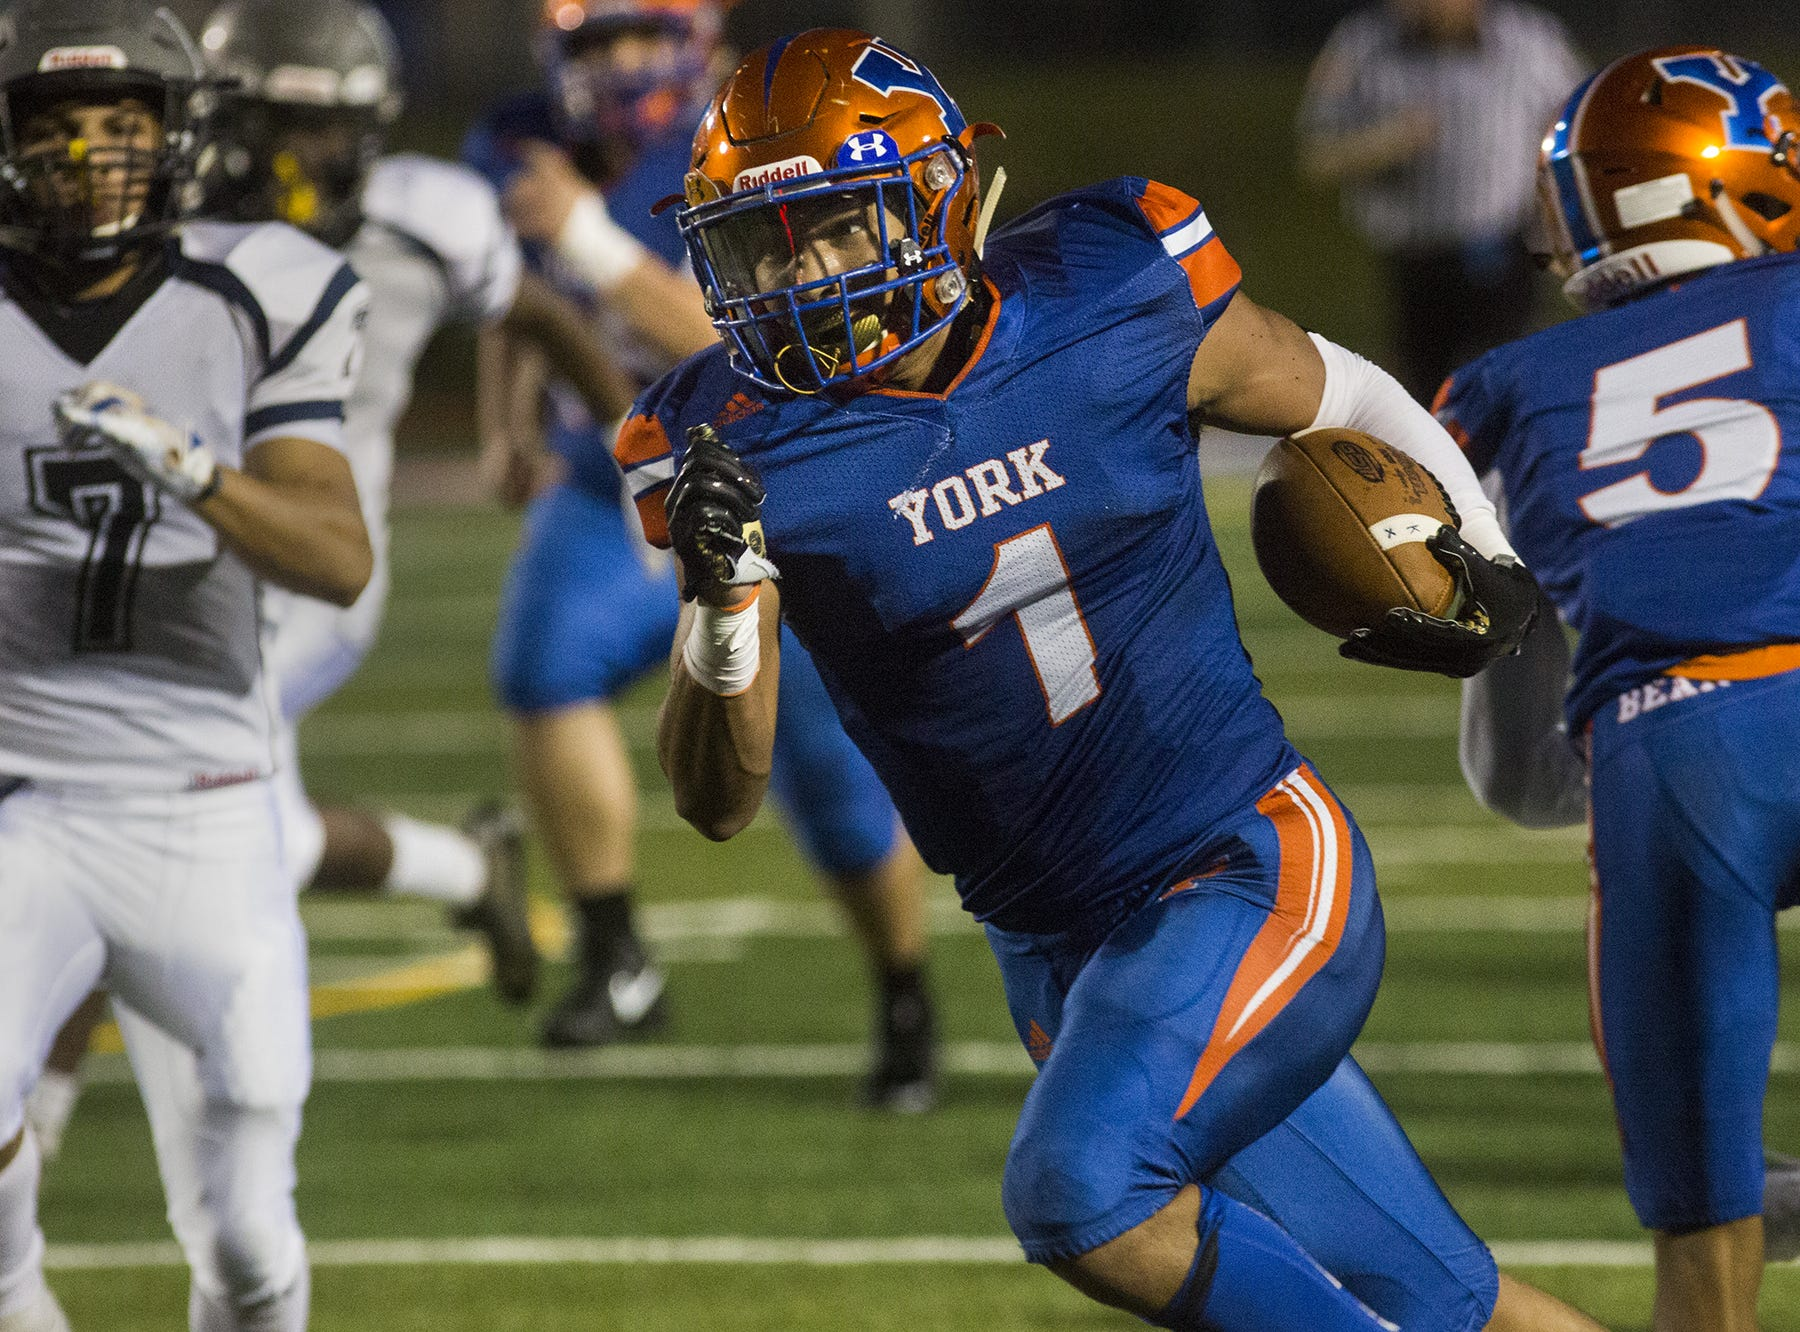 York High's Dayjure Stewart, center, runs for the Bearcats' third touchdown of the game. York High defeated Dallastown 68-35 in football at Small Athletic Field in York, Friday, September 28, 2018.